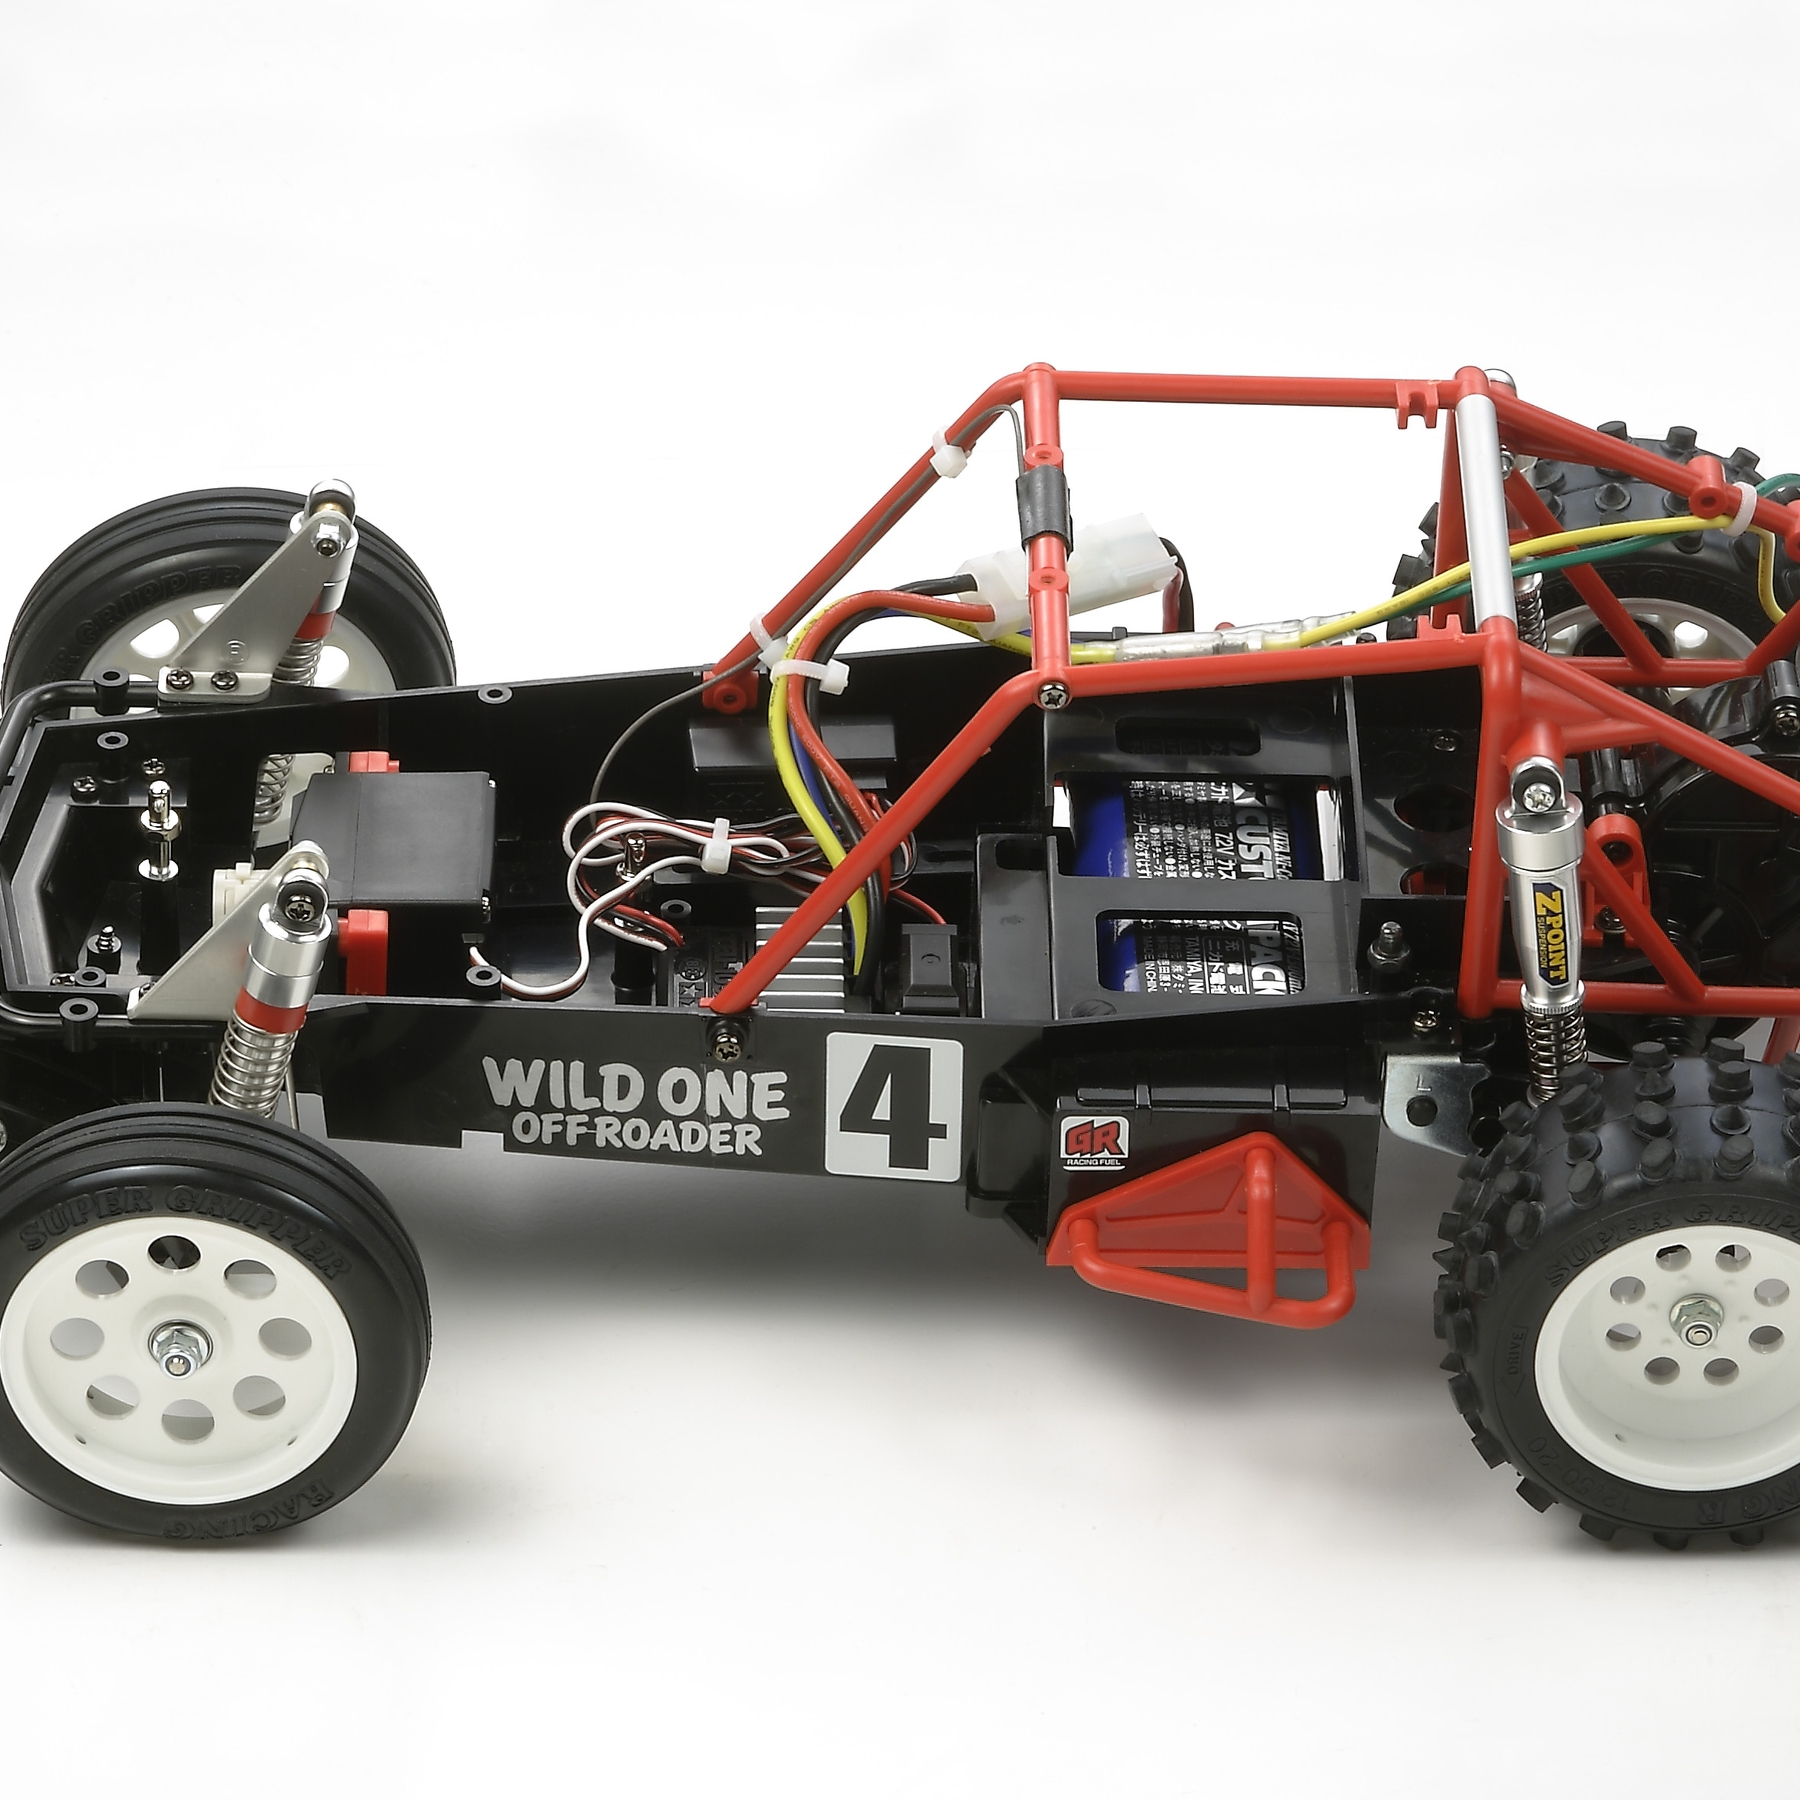 Rc Wild One Off-Roader